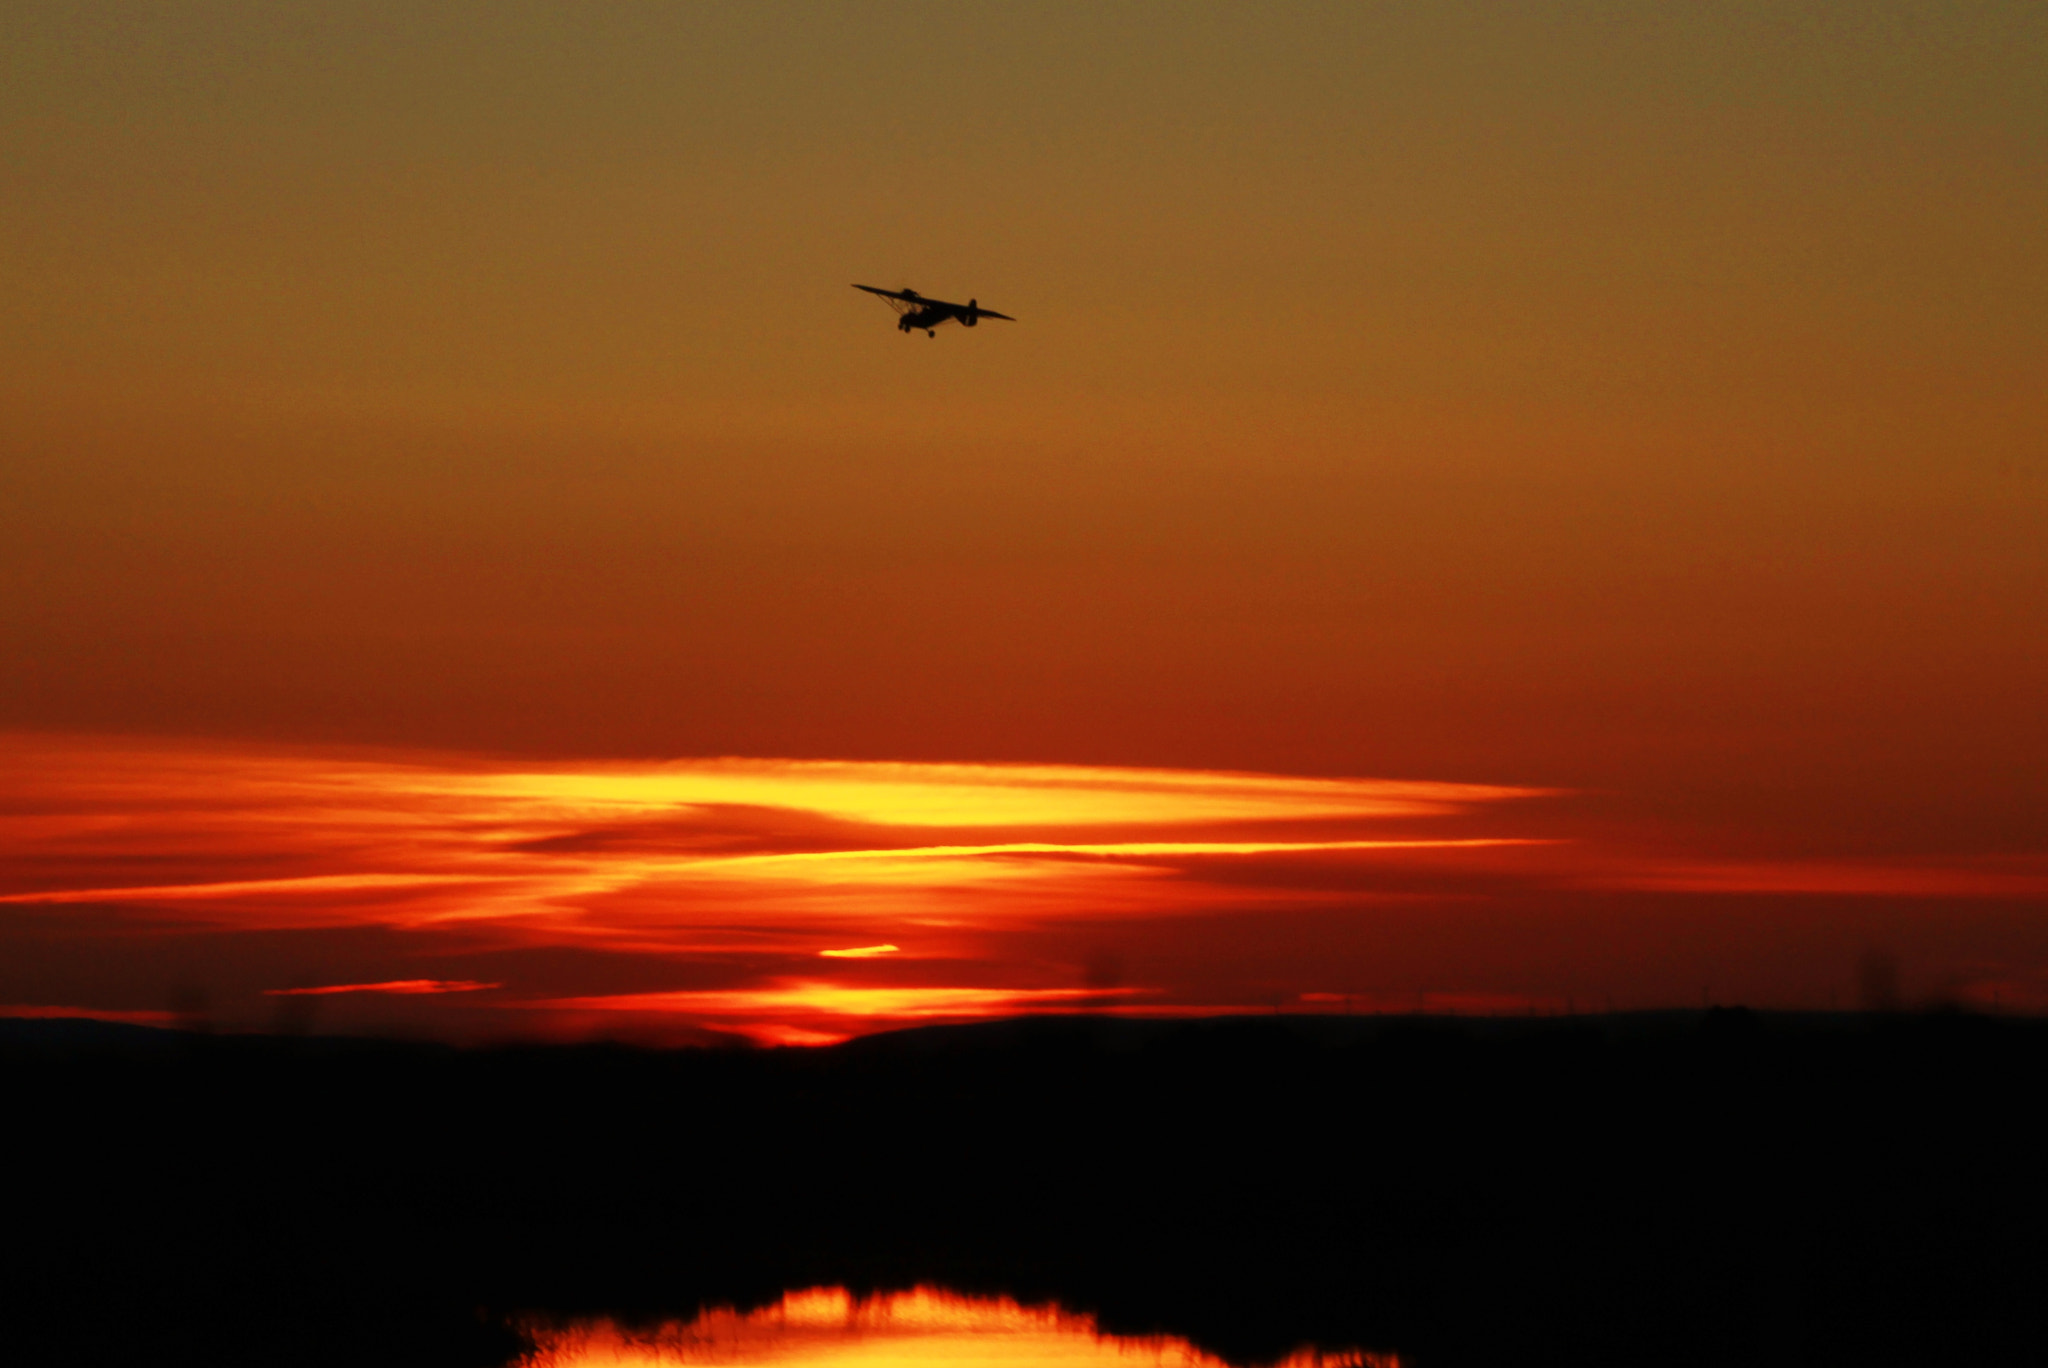 Photograph flying in a sunset by richard cauchy on 500px